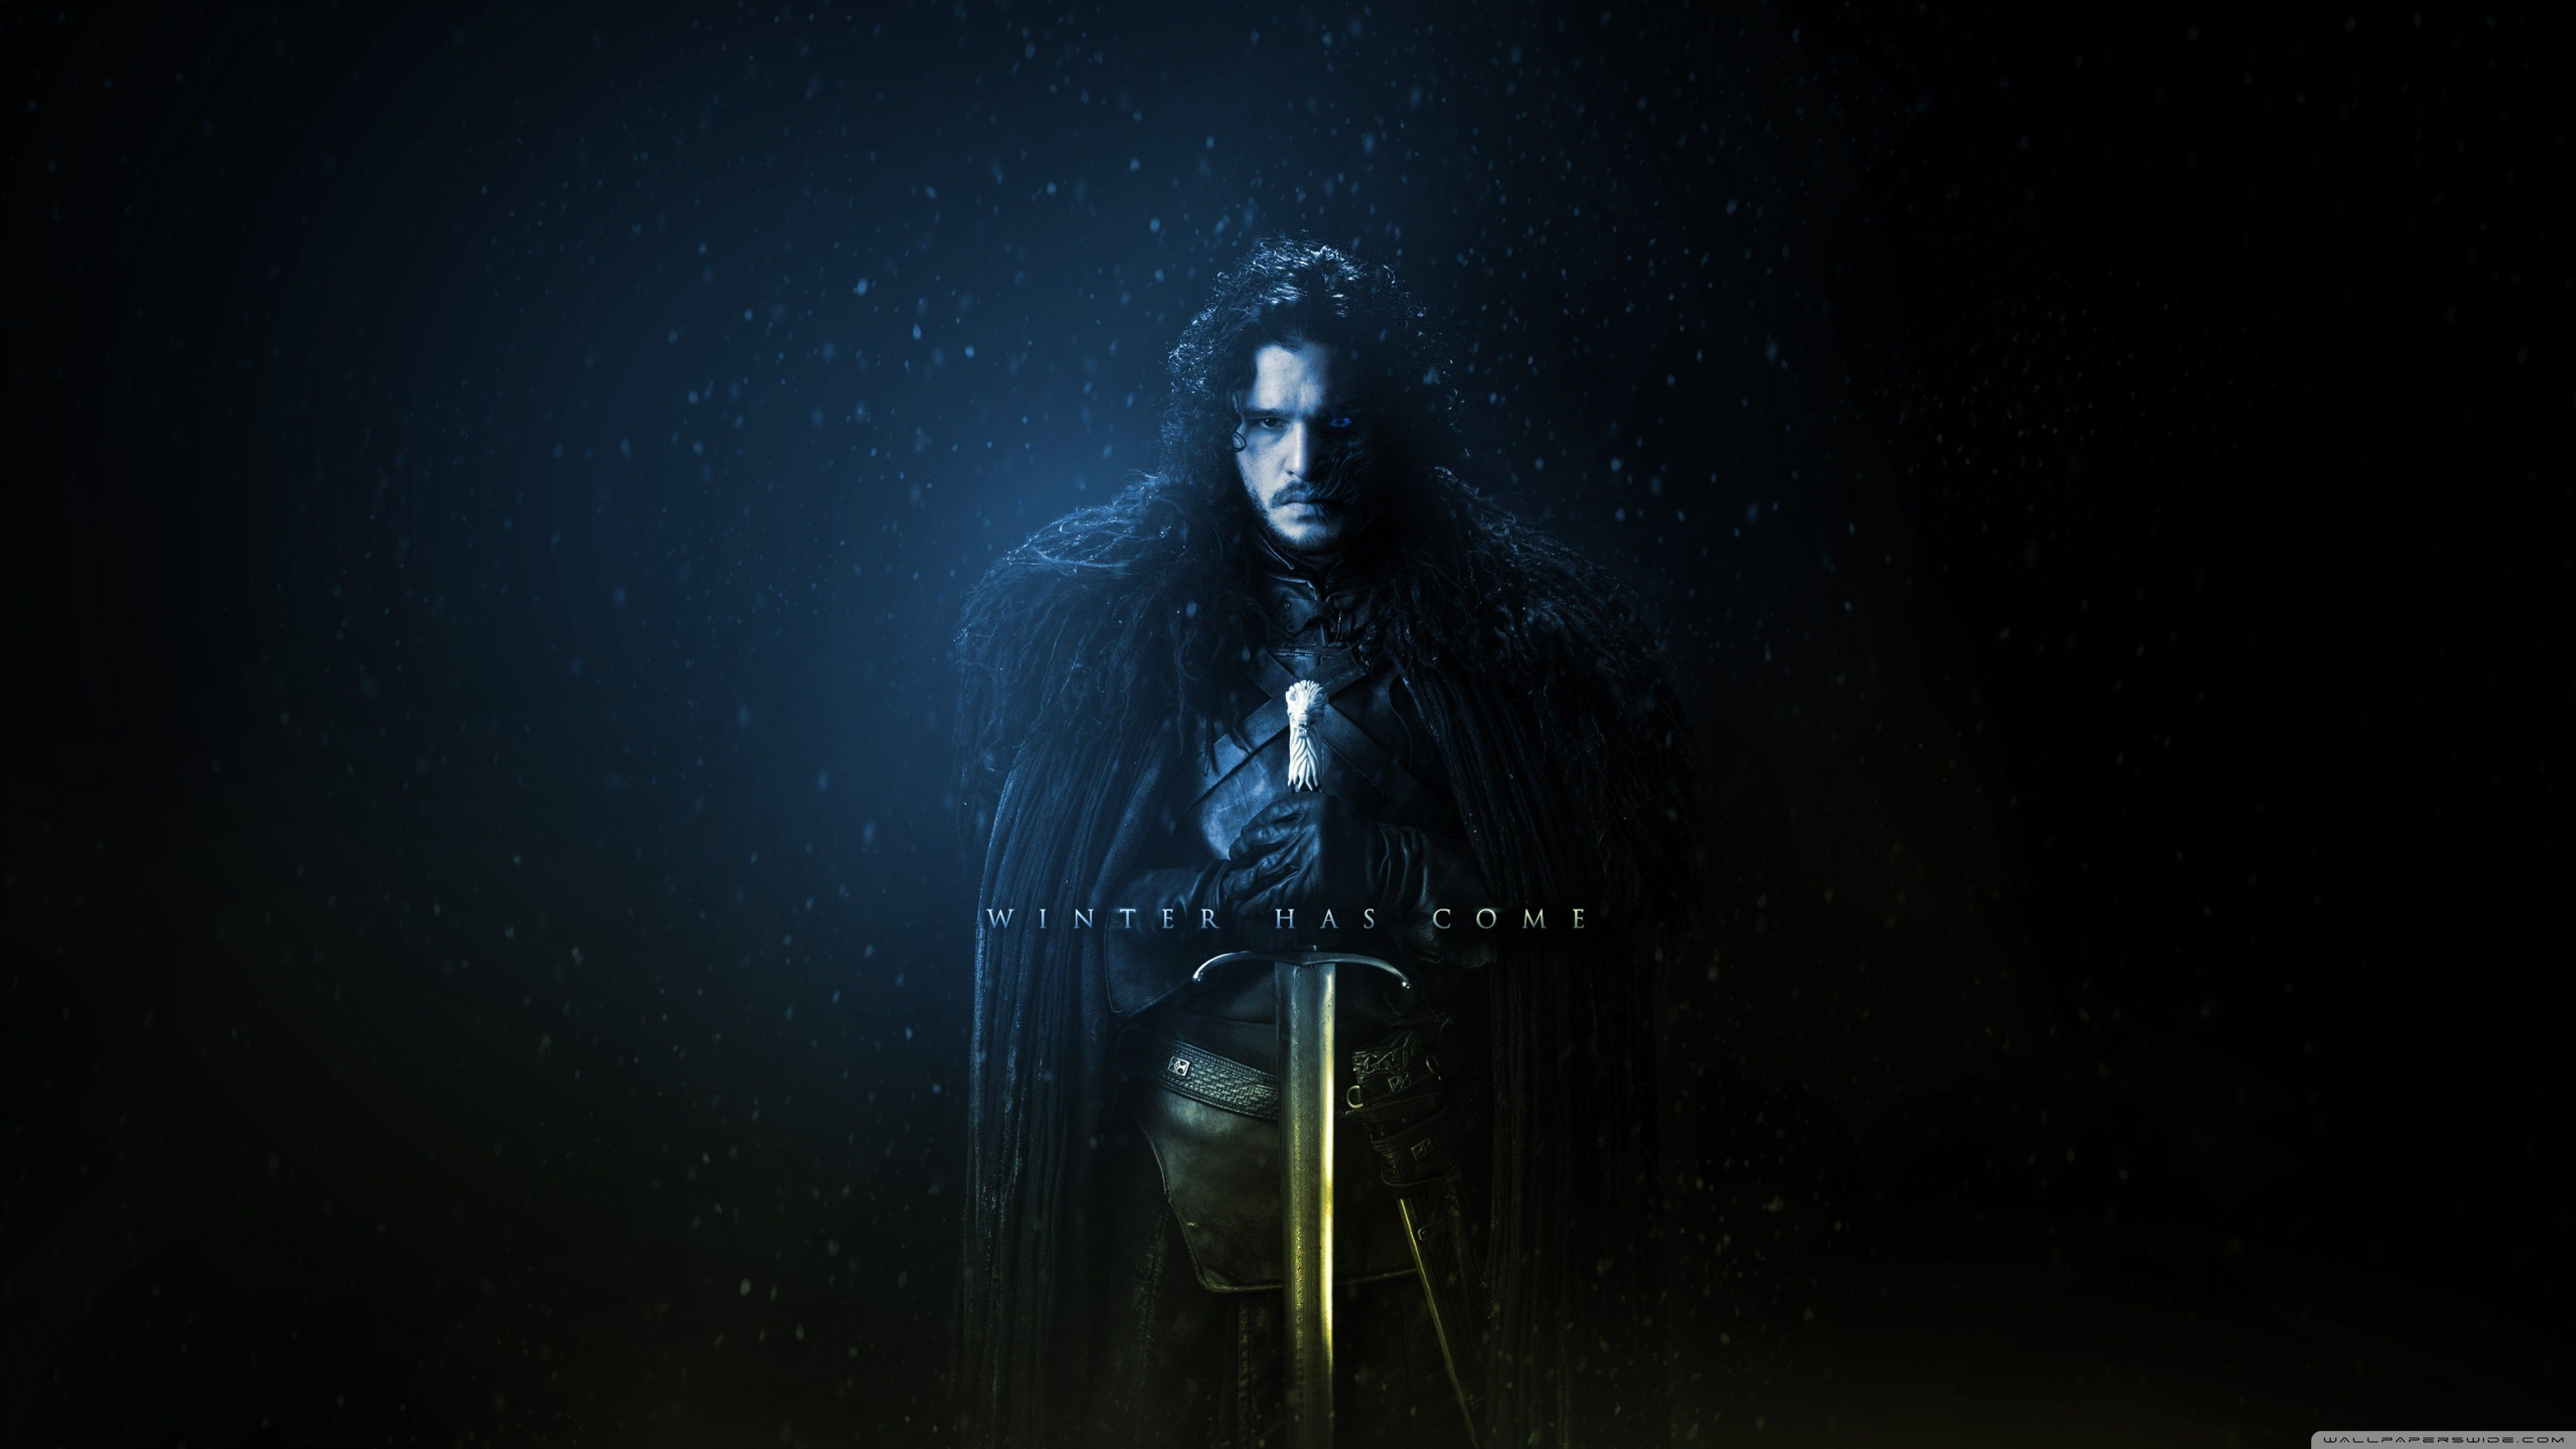 Game of Thrones 1080p Wallpapers